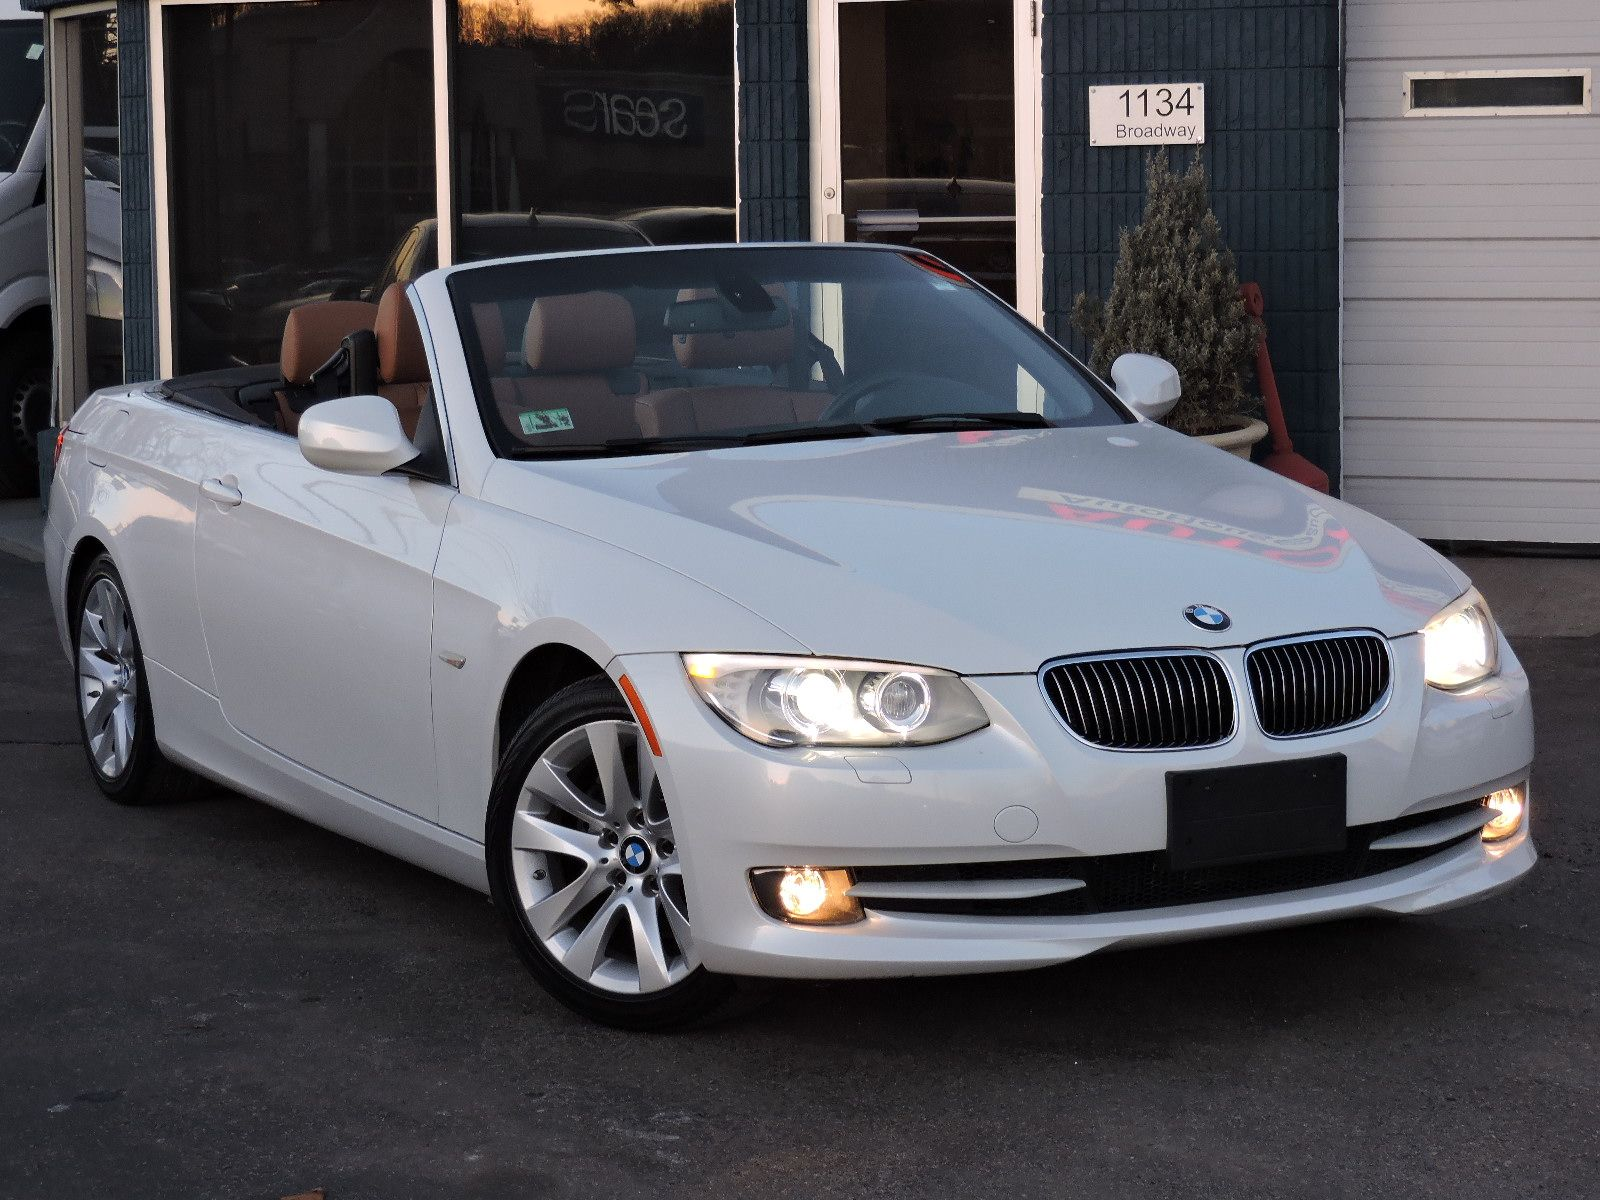 2011 BMW 3 Series 2dr Conv 328i